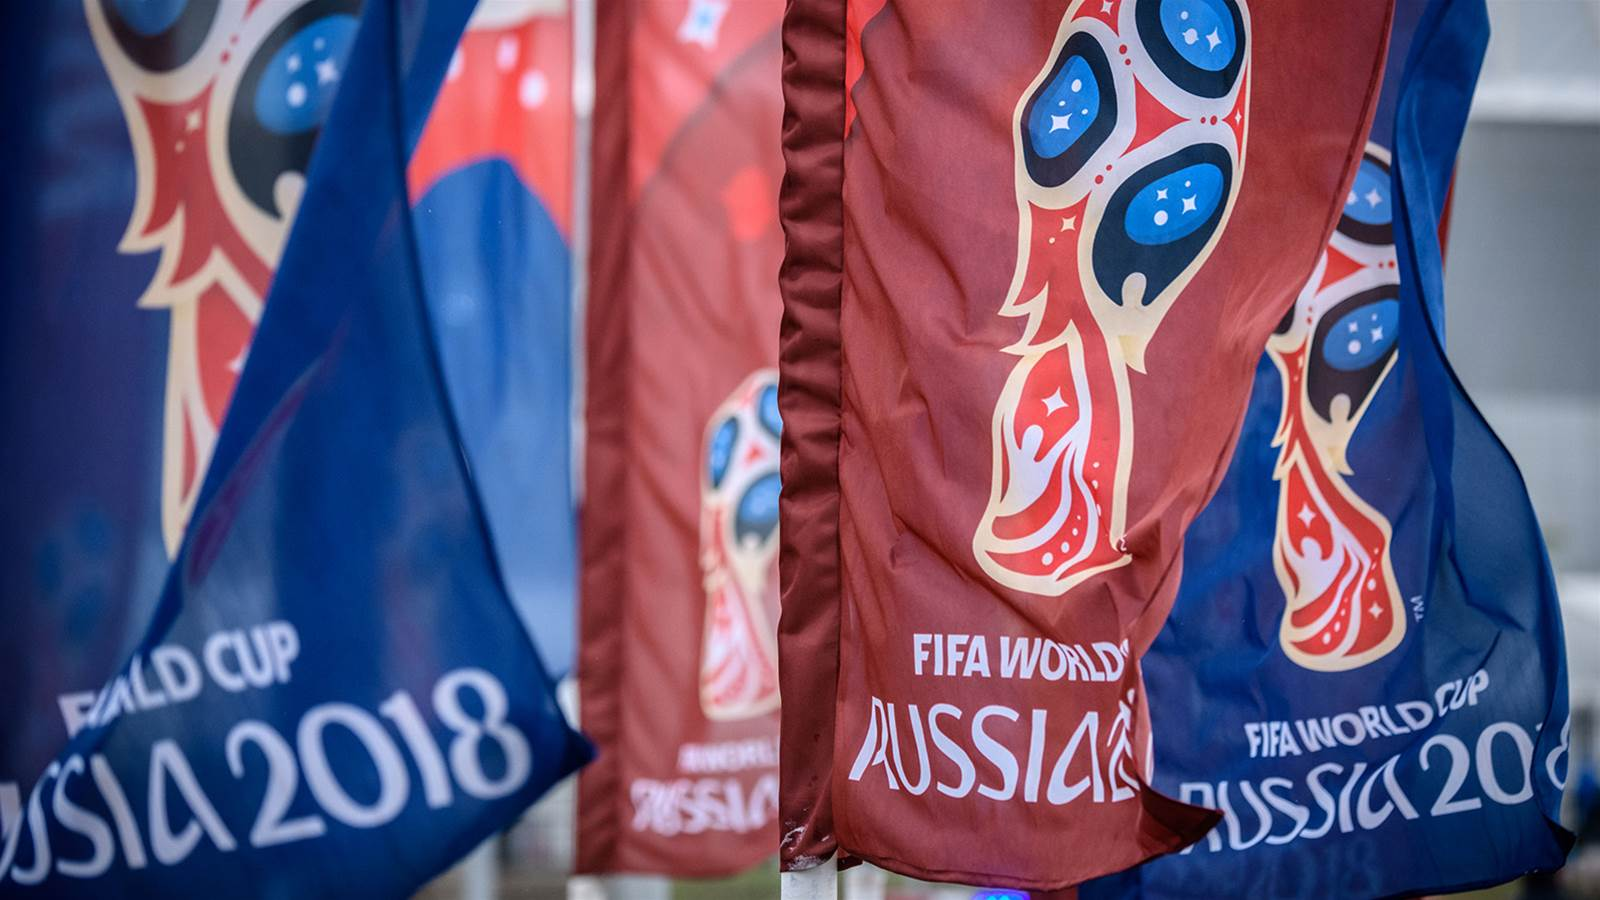 Qatar to Make Use of Experience of Good Russian FIFA World Cup Organization - Minister